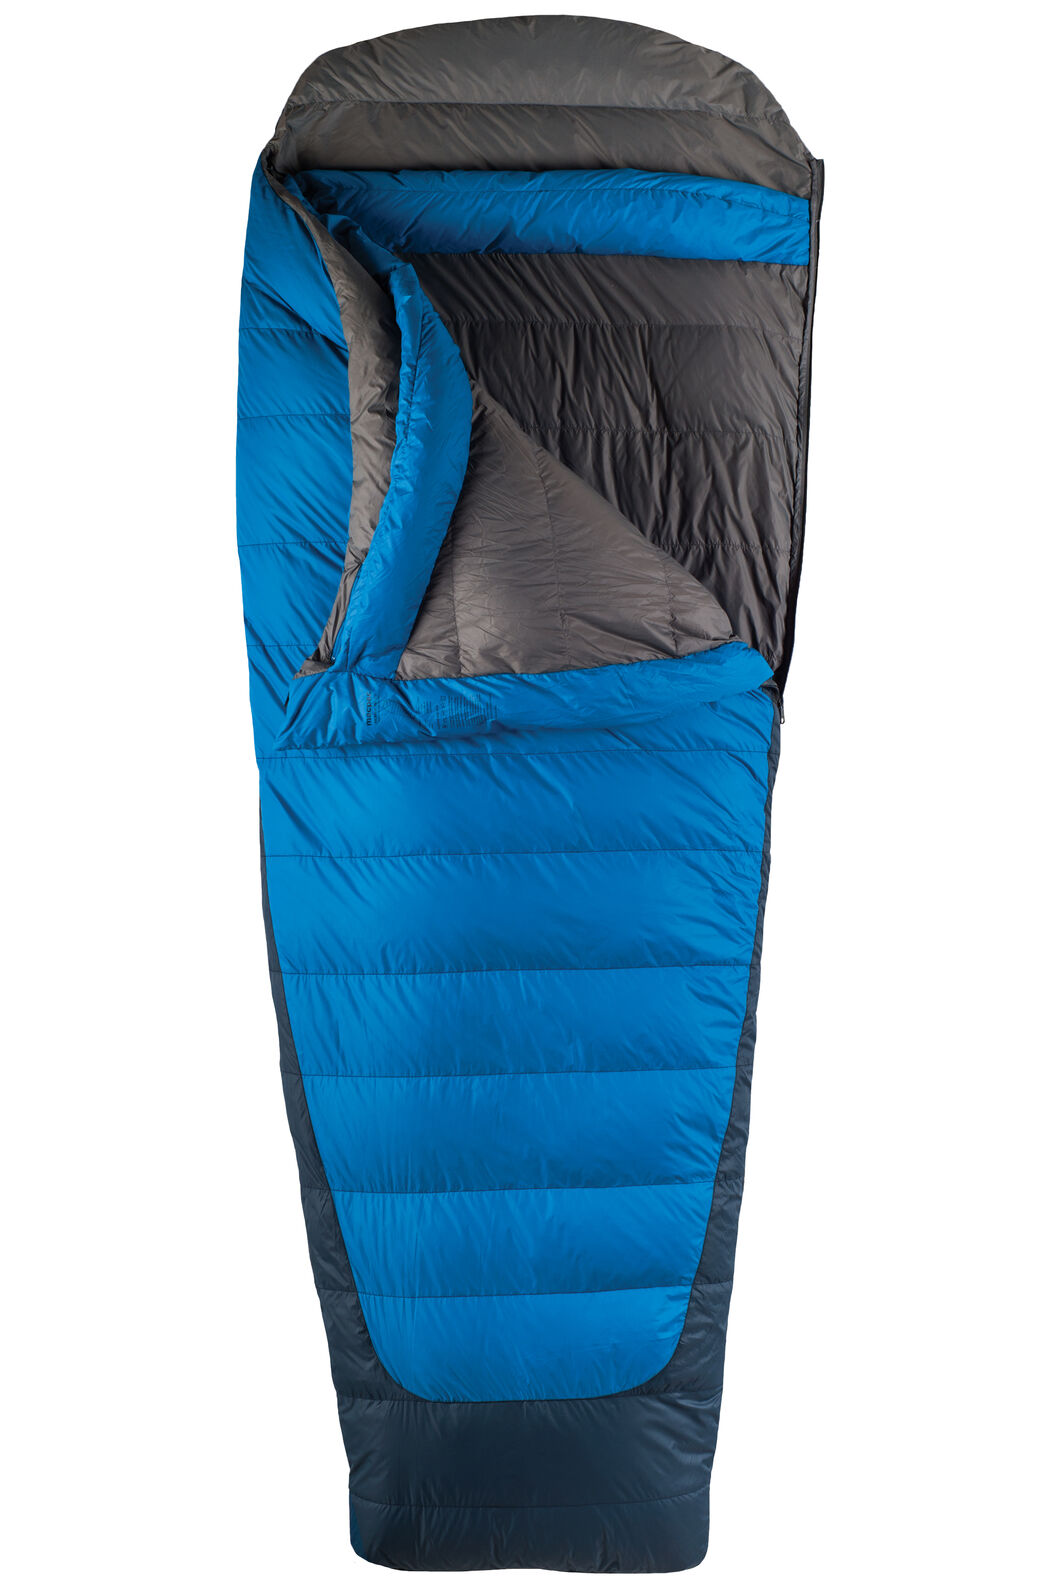 Macpac Escapade Down 700 Sleeping Bag - Women's, Classic Blue, hi-res